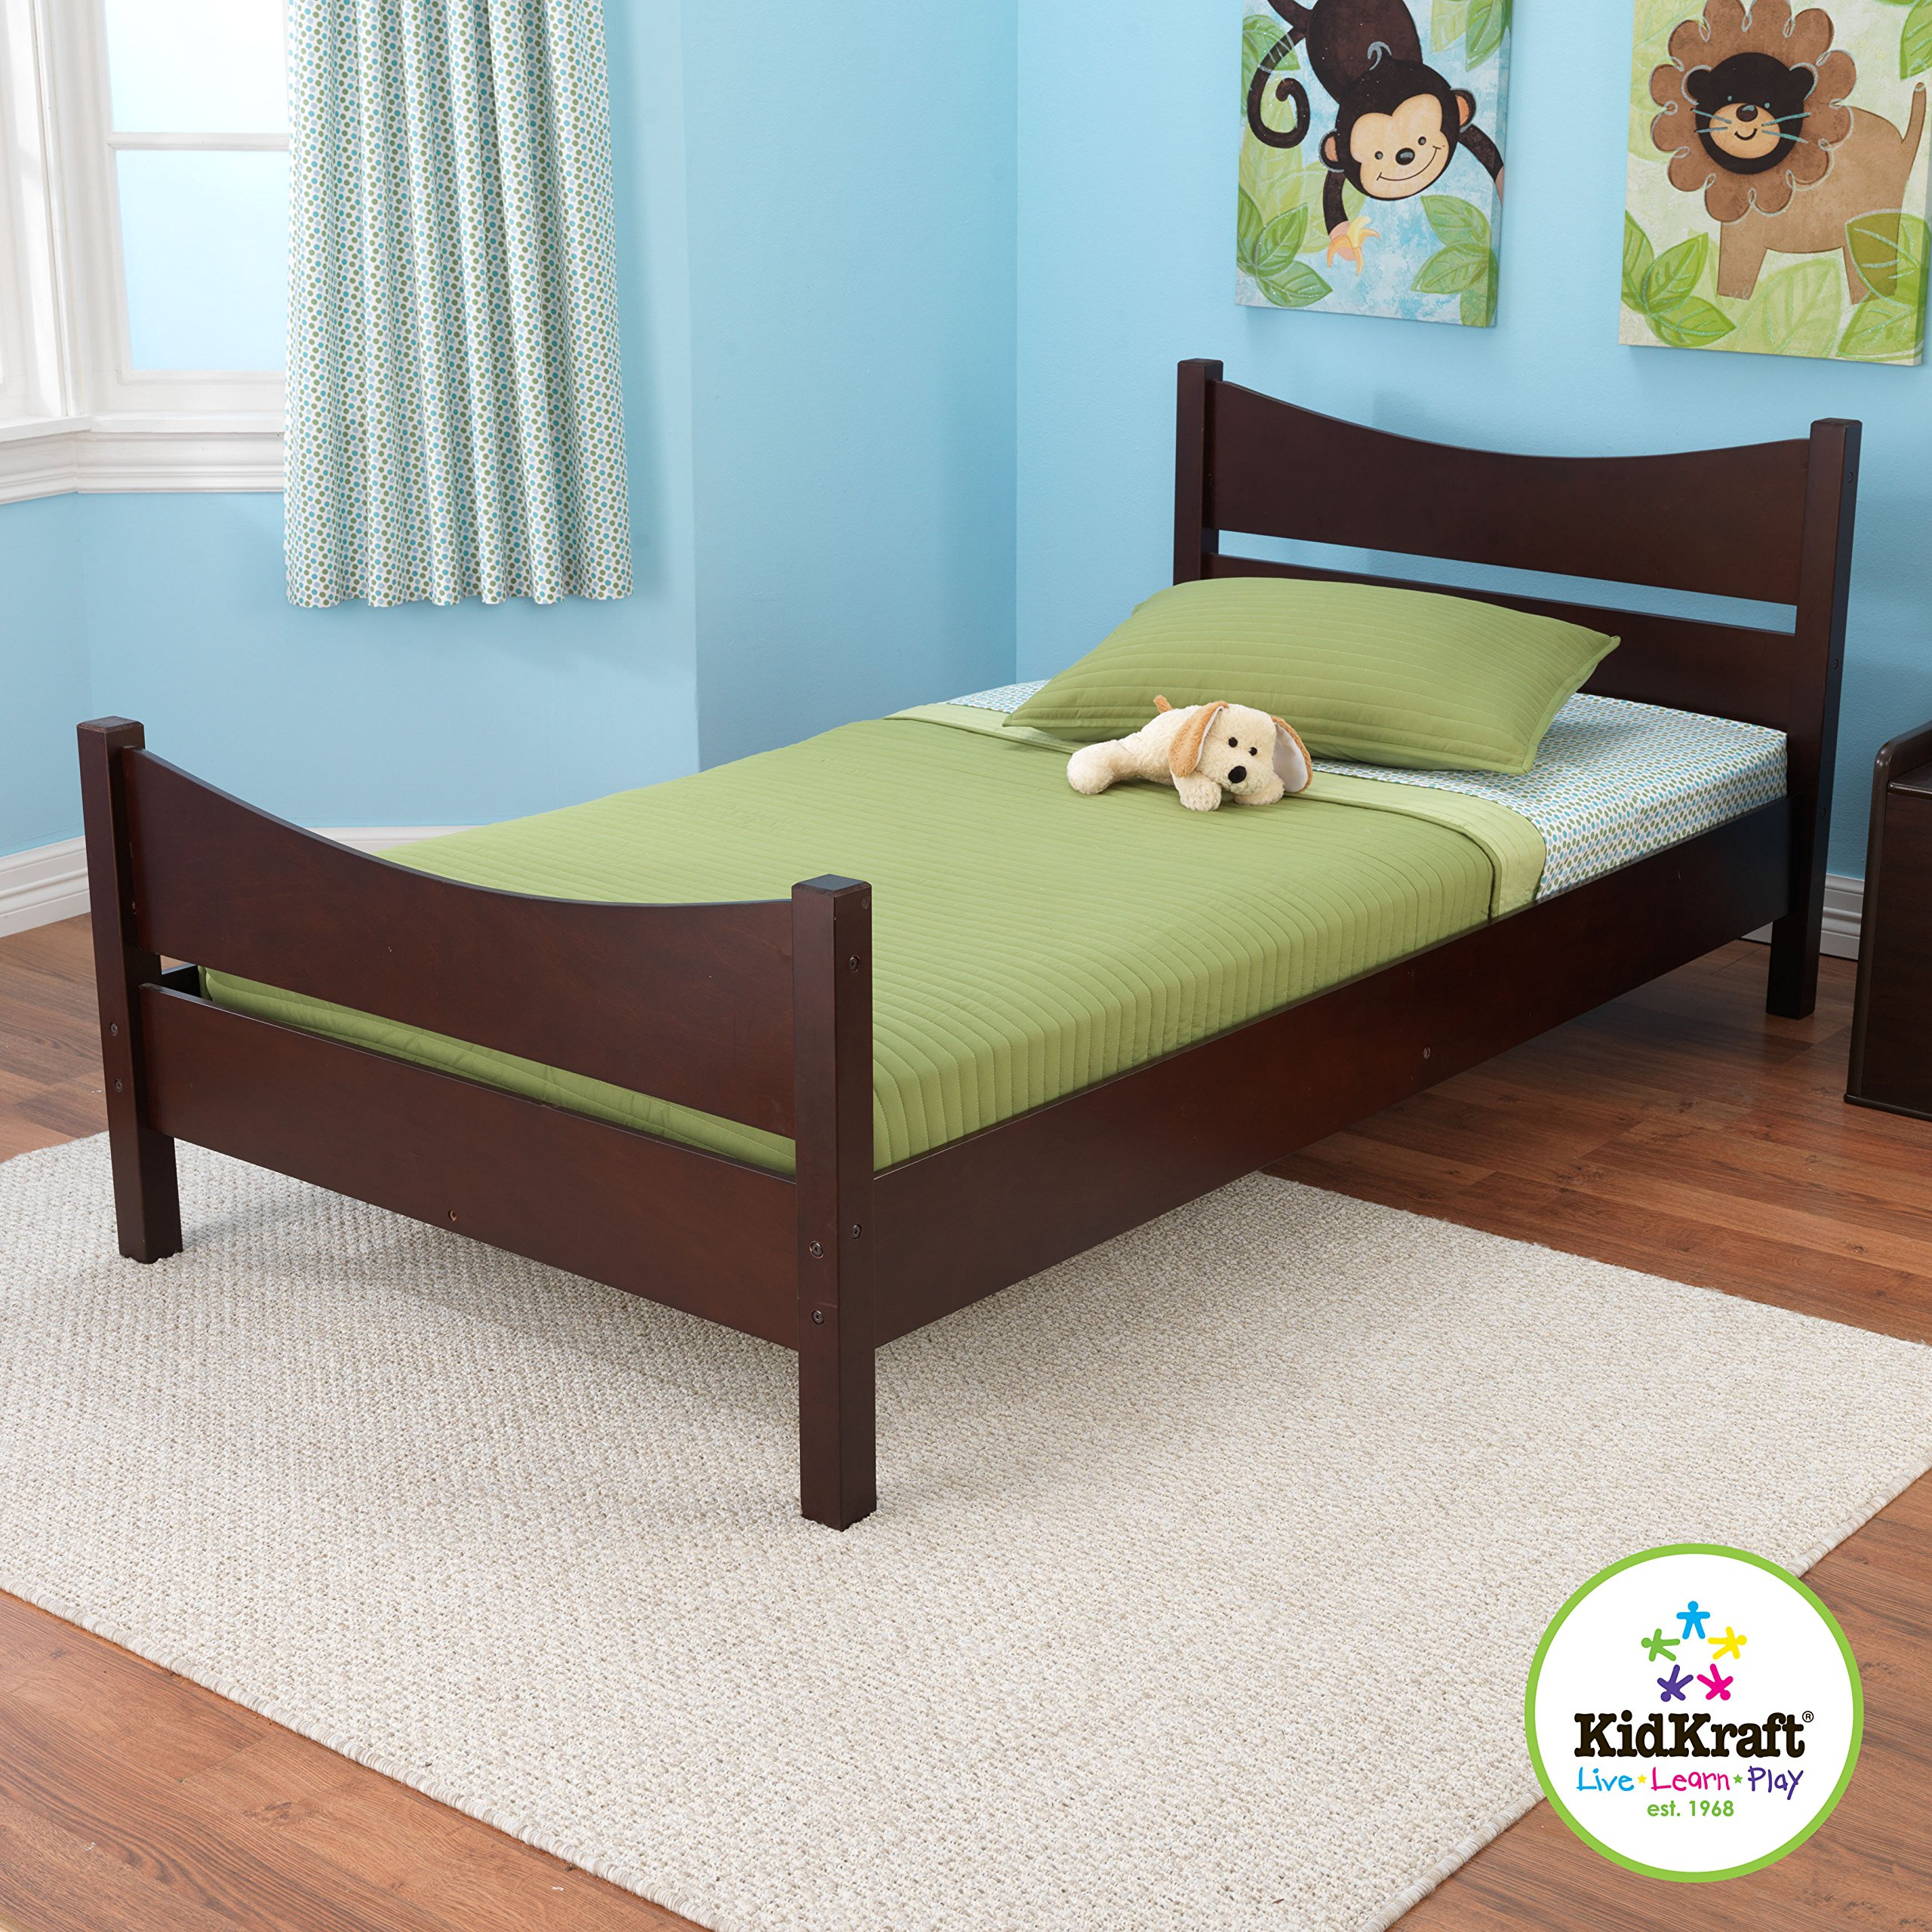 KidKraft Addison Twin Bed, Espresso by KidKraft (Image #2)